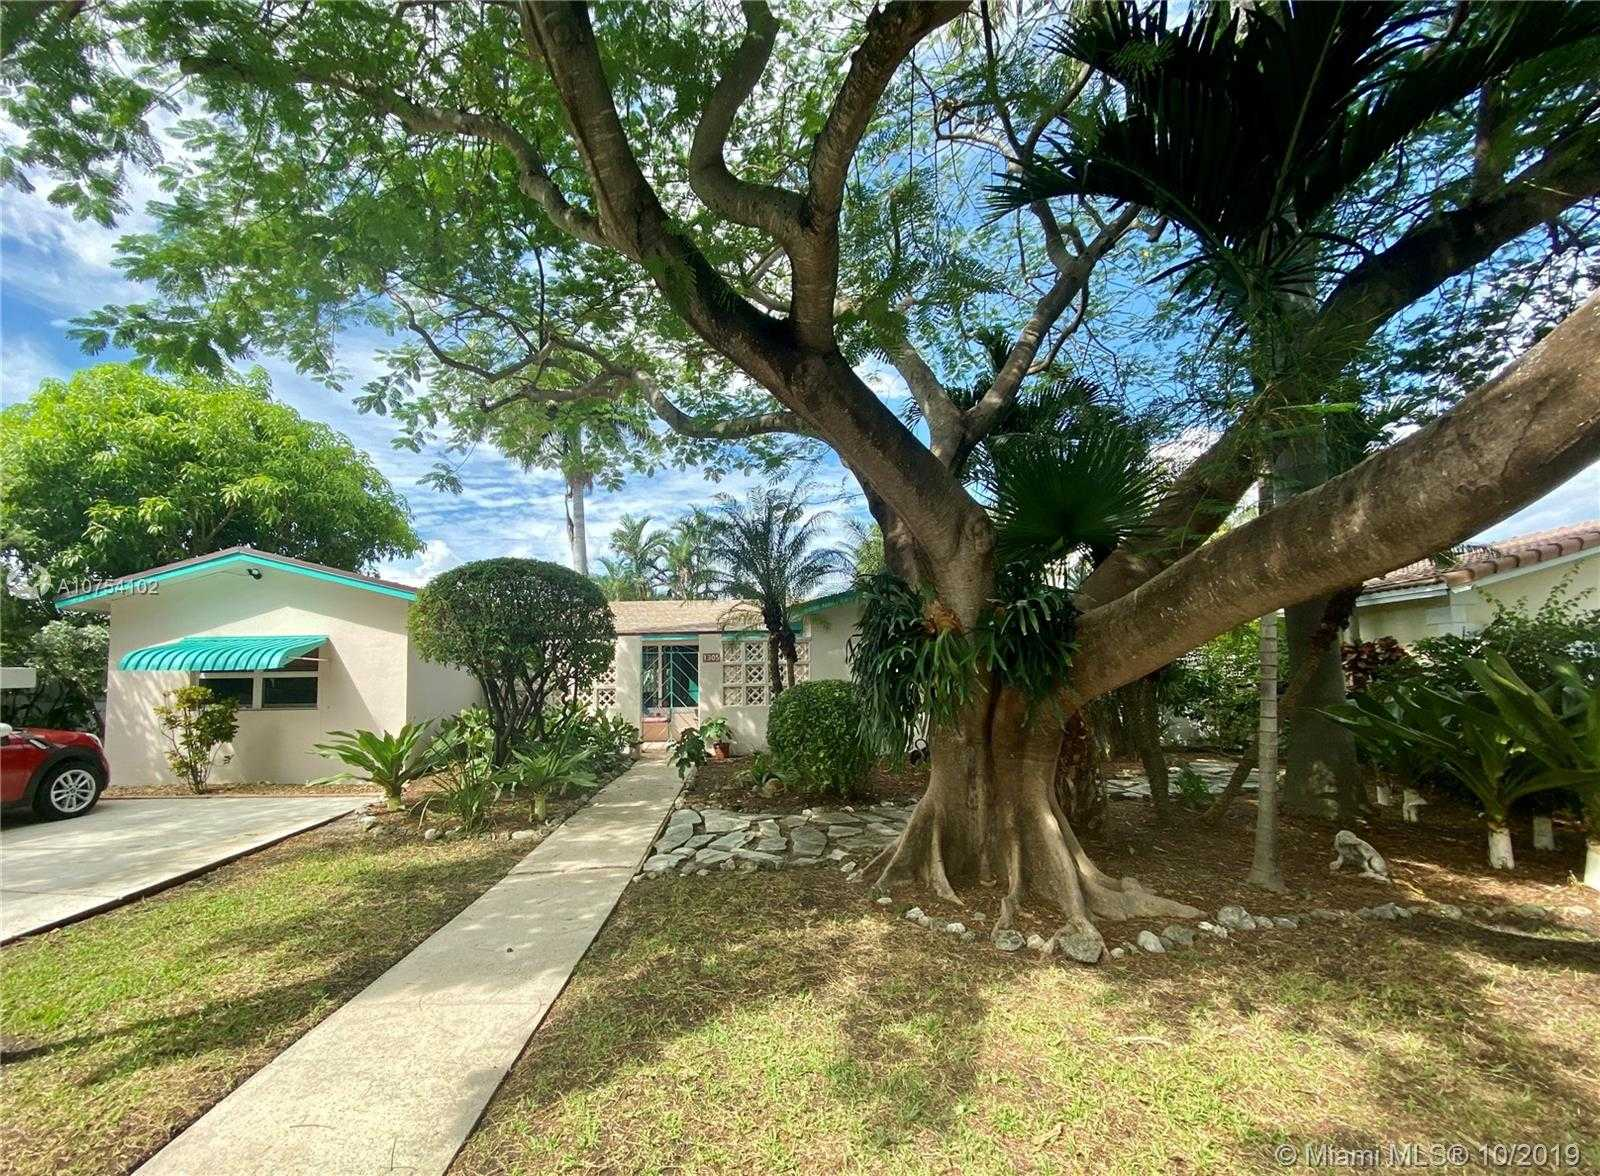 $429,000 - 3Br/2Ba -  for Sale in Country Club Homes, Hollywood